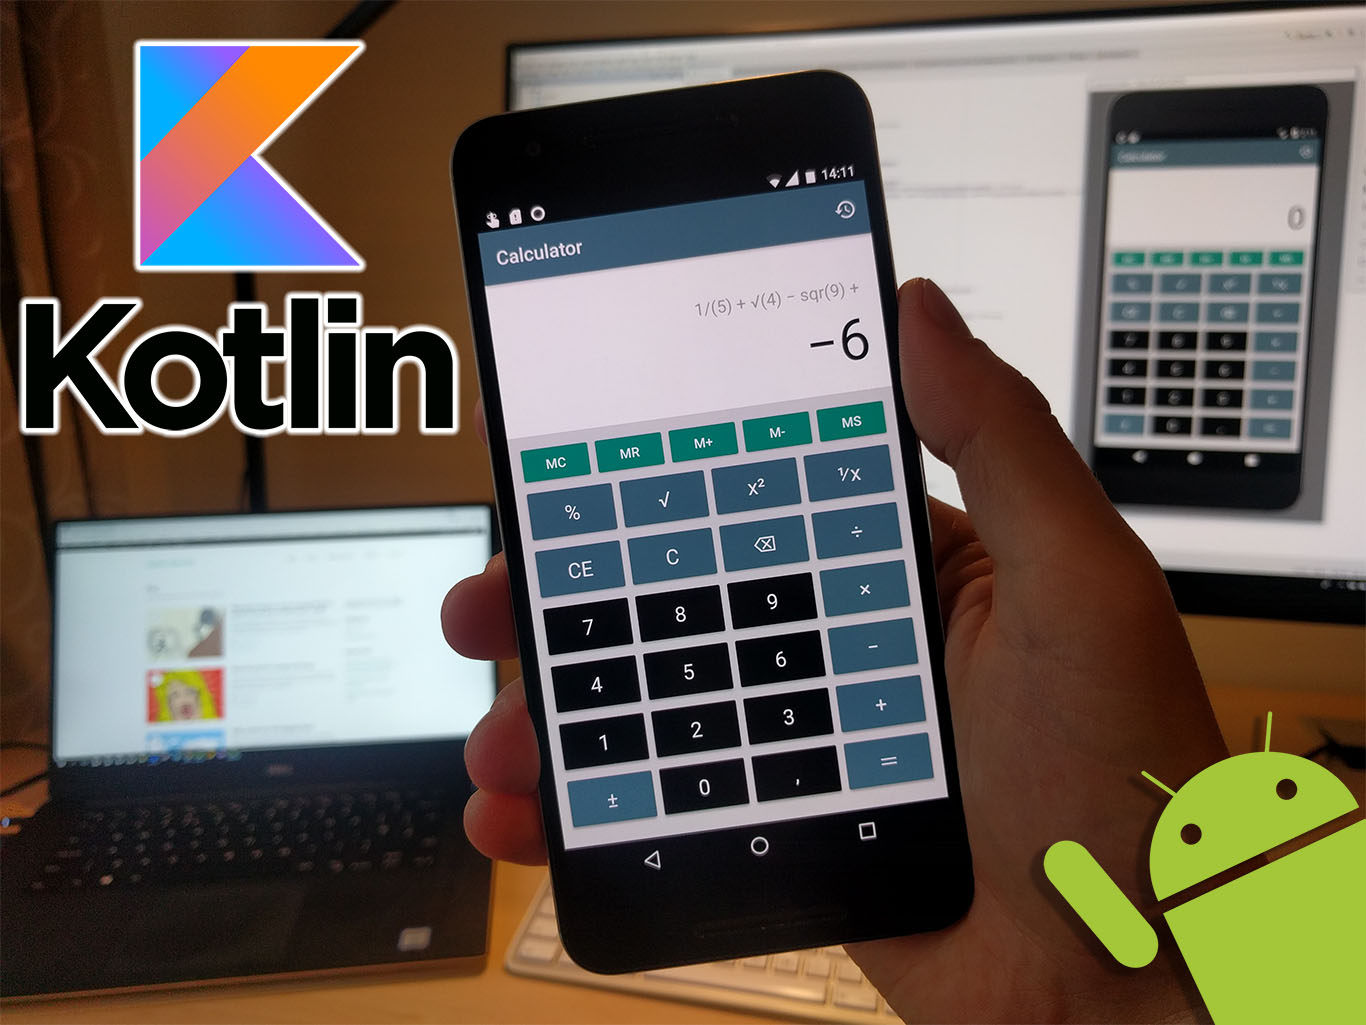 Let's learn Kotlin by building Android calculator app